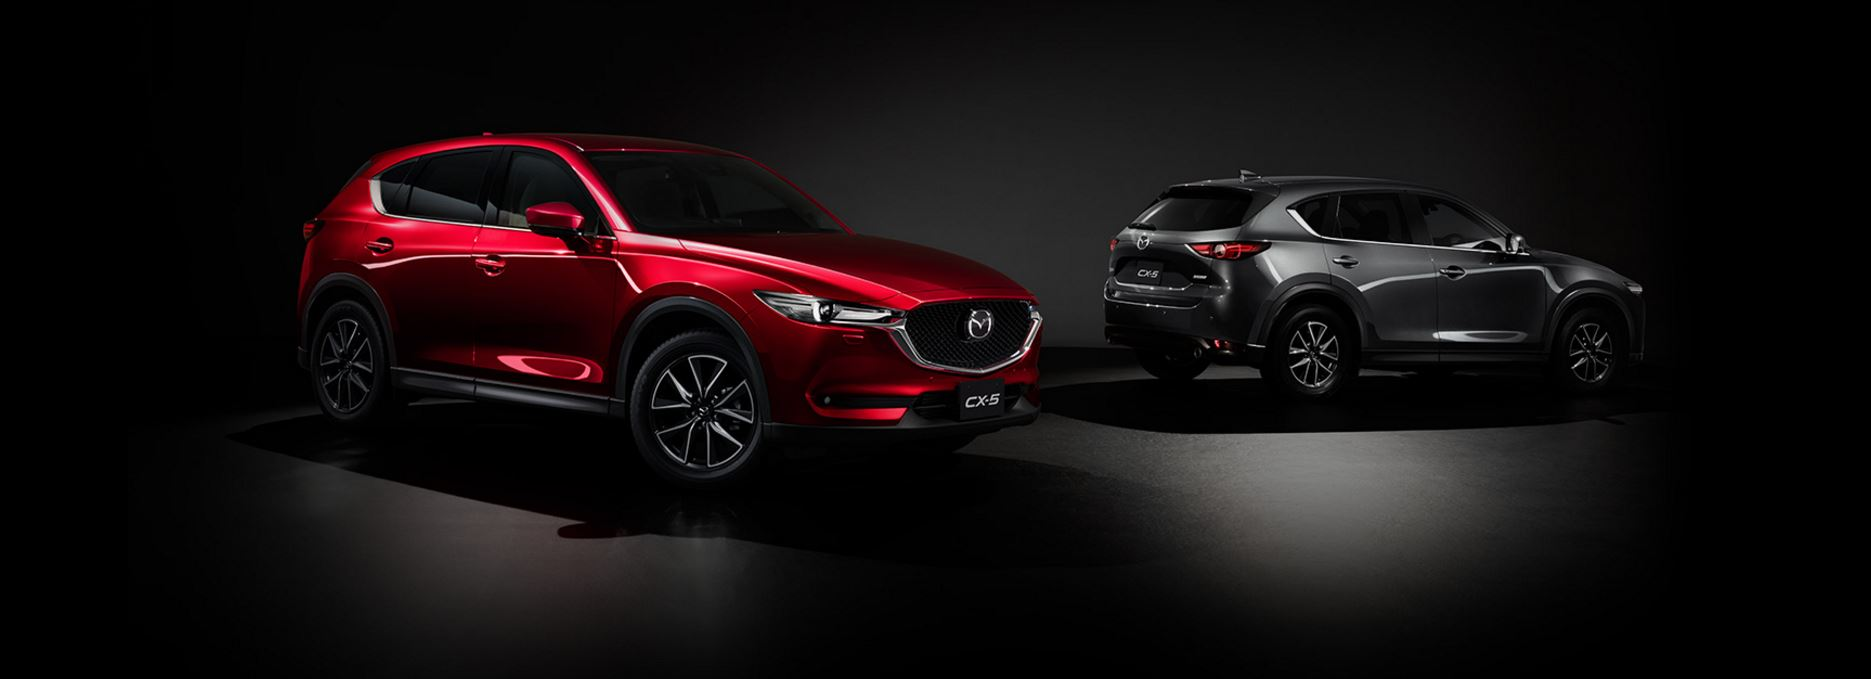 the wait is over welcome the new 2017 mazda cx 5 cardinaleway mazda las vegas. Black Bedroom Furniture Sets. Home Design Ideas